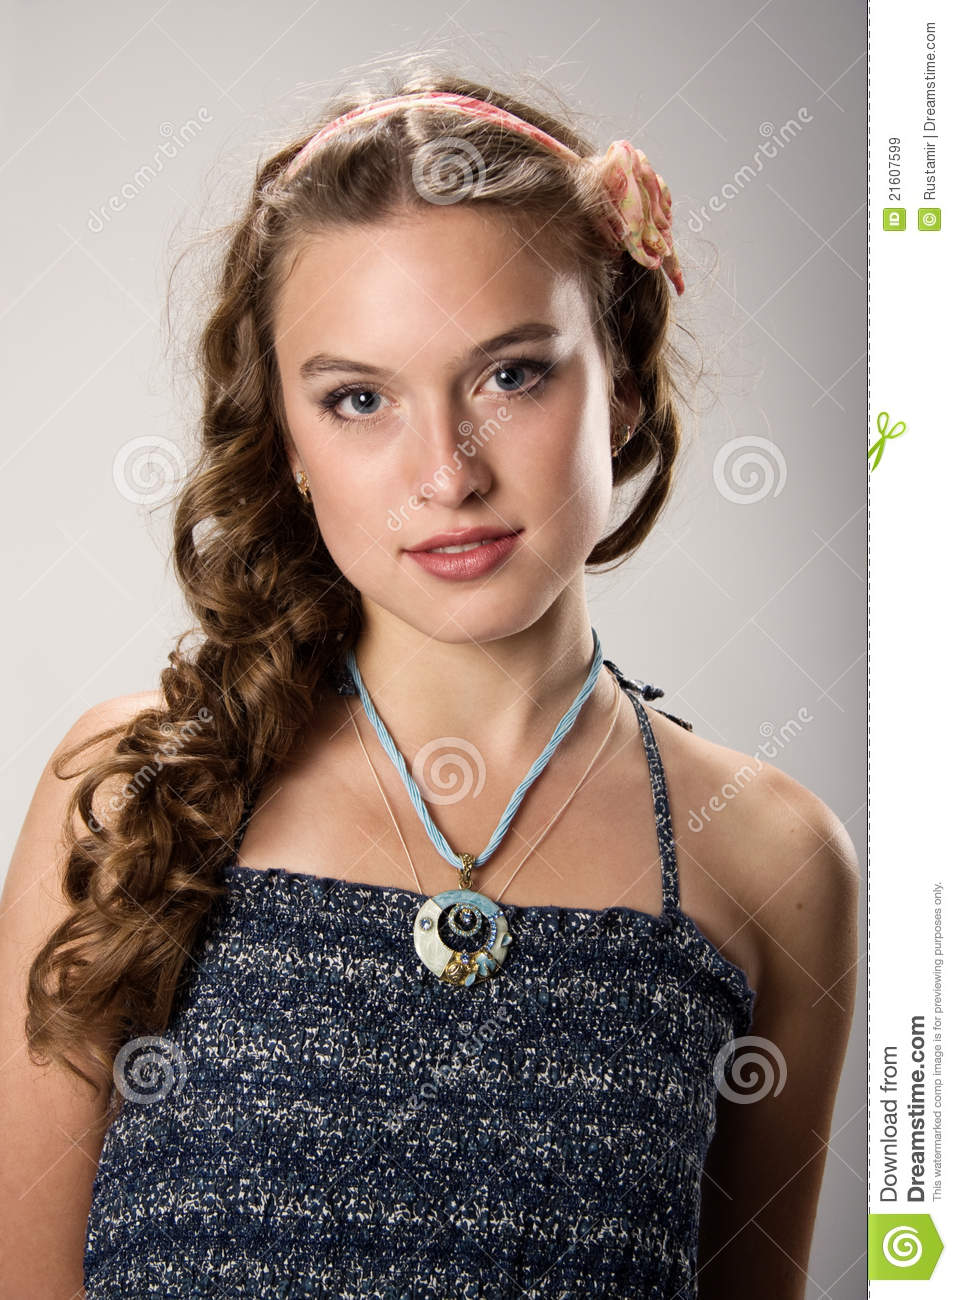 Portrait of a pretty young girl with long hair